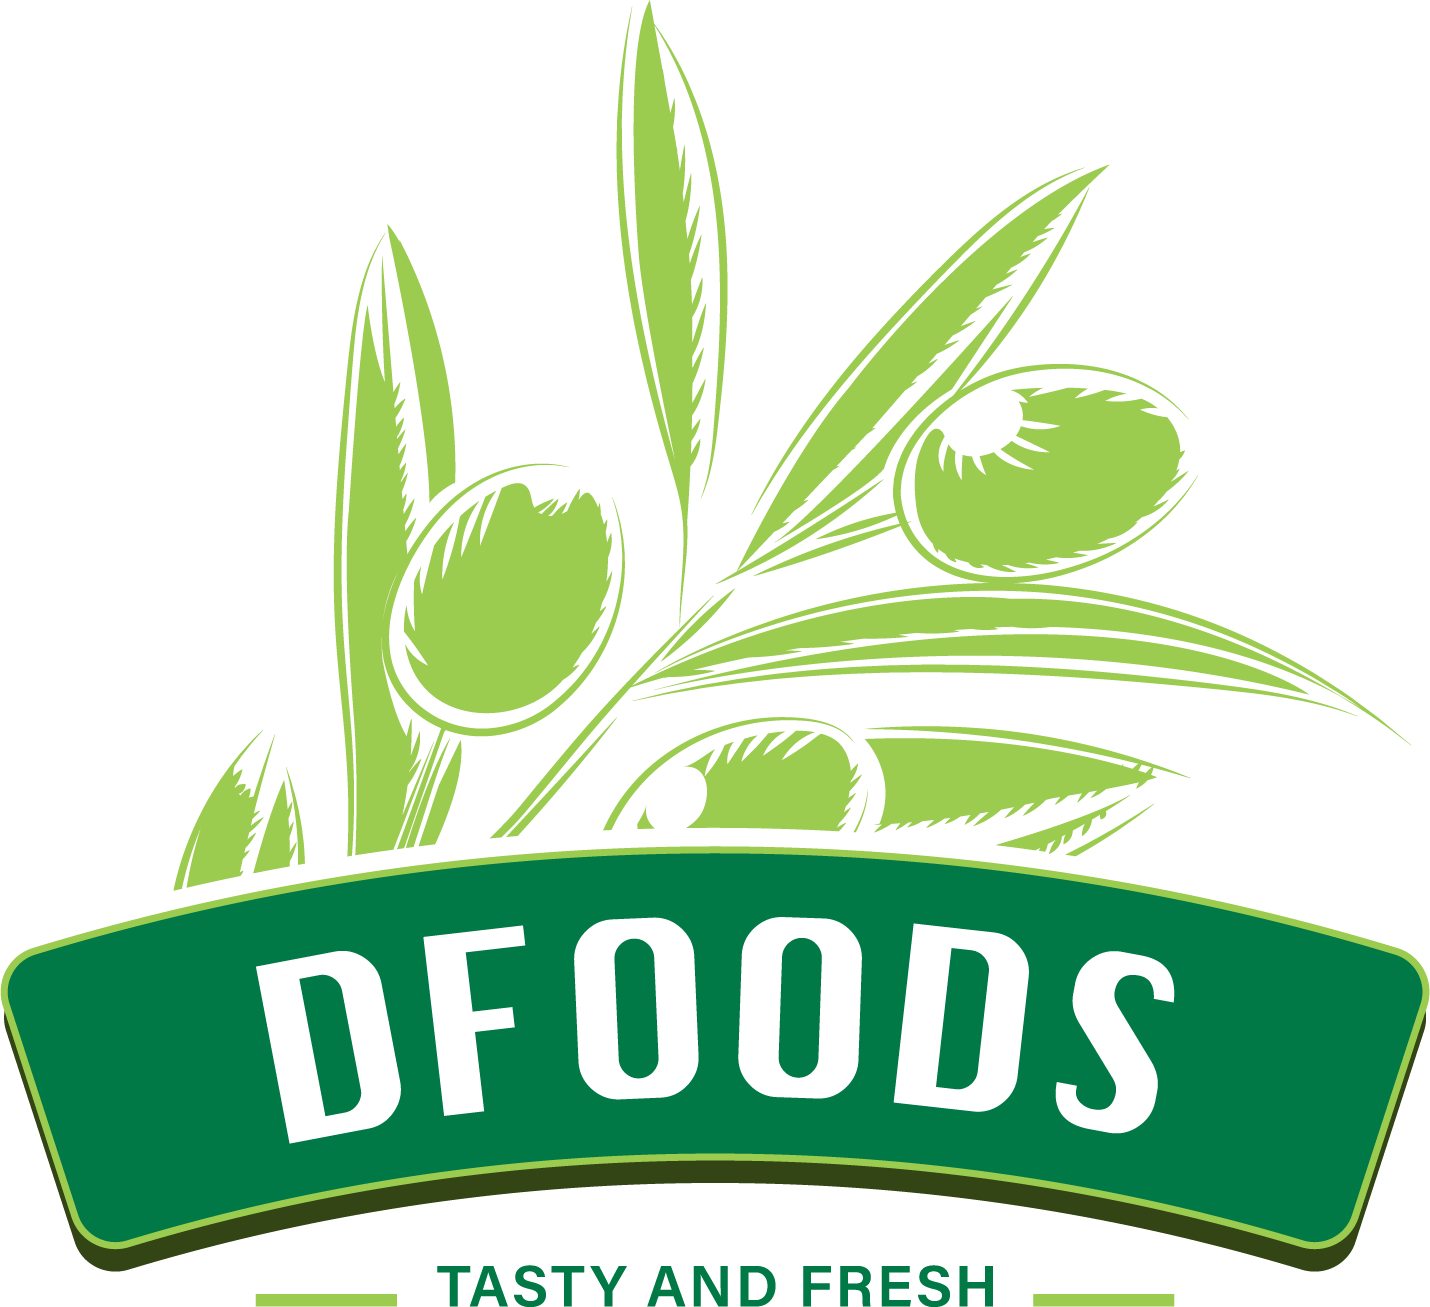 Dfoods